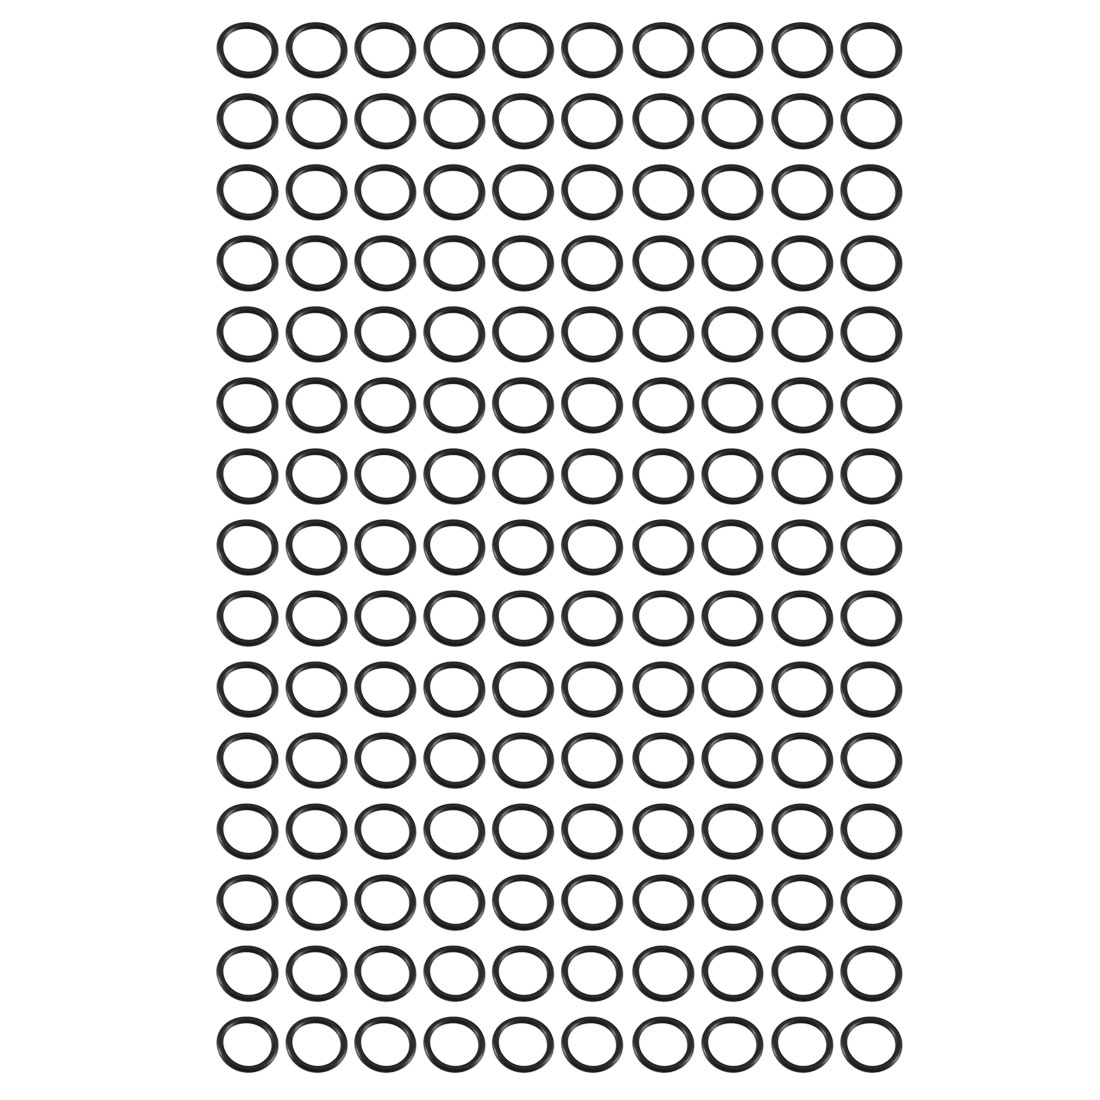 150pcs Black 13mm Outer Dia 1.5mm Thickness Sealing Ring O-shape Rubber Grommet